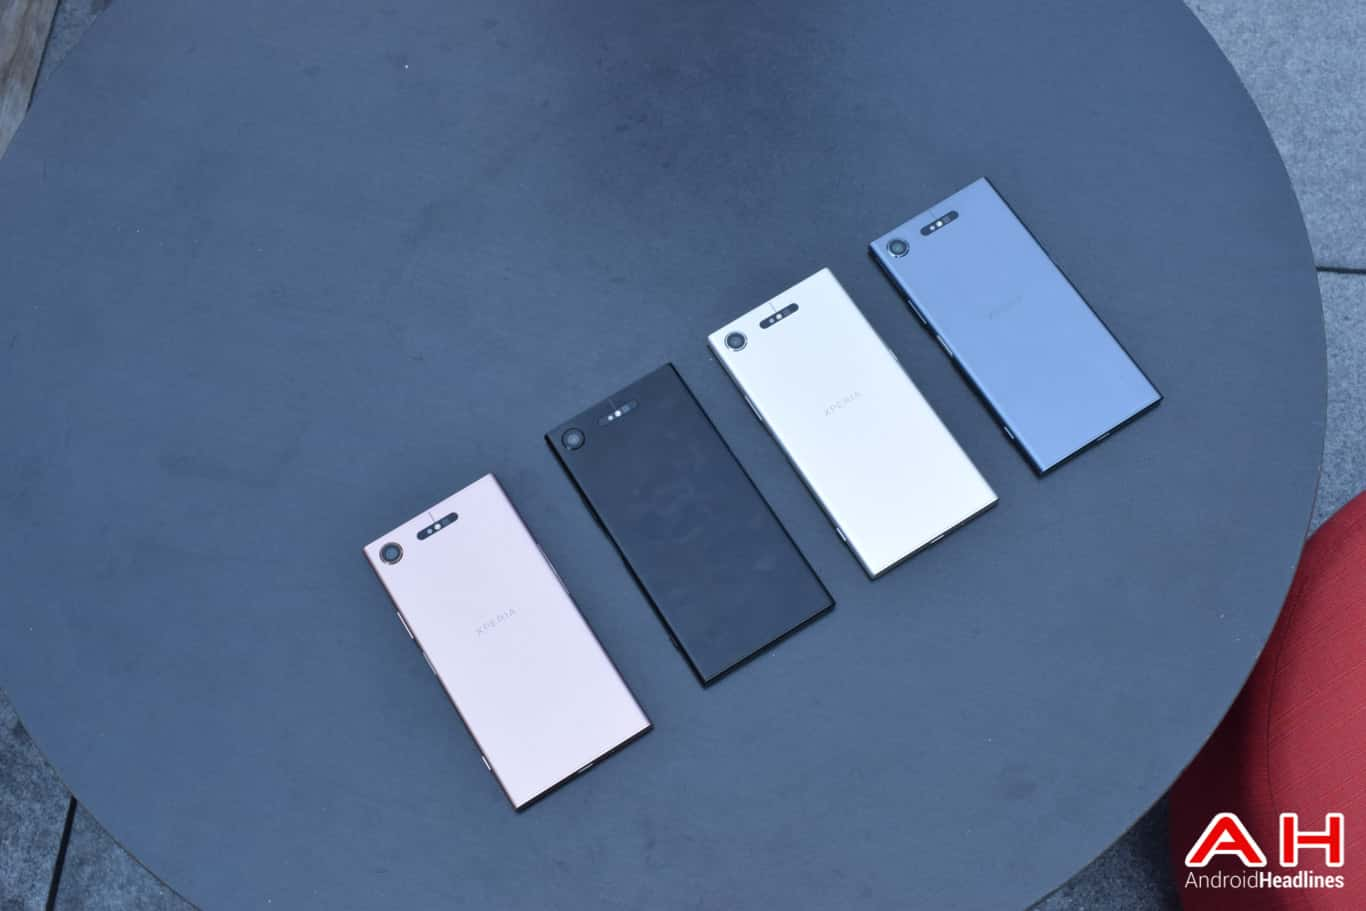 sony xperia xz1. a big win for sony. the xperia xz1 is looking like great smartphone, but disabled fingerprint sensor will likely keep it out of even more hands. sony xz1